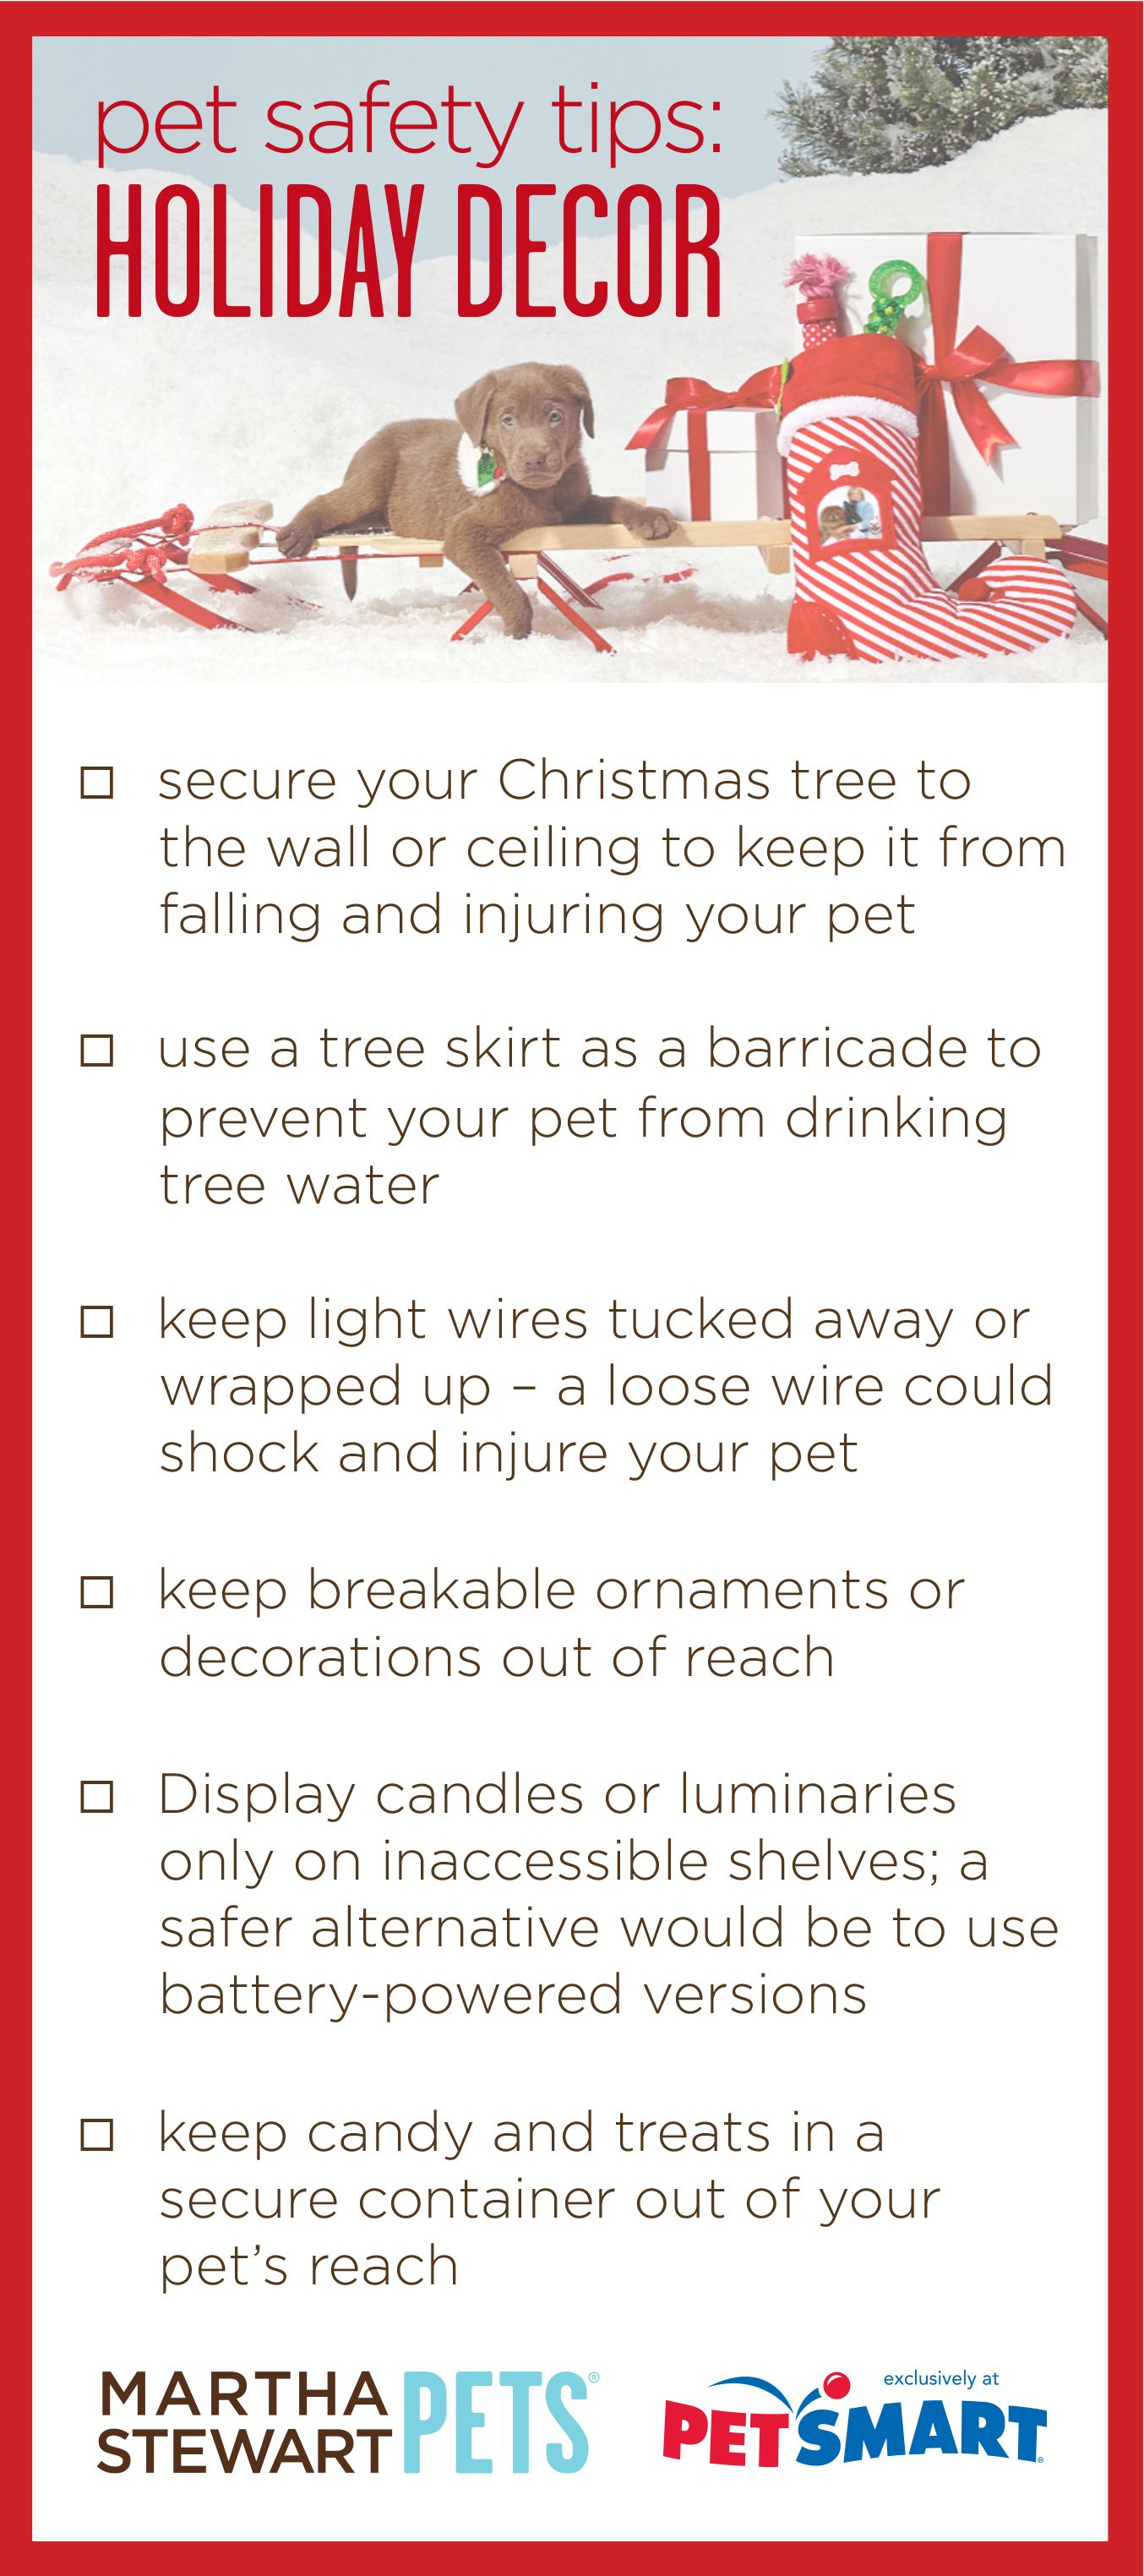 Holiday Pet Safety: Holiday Decor | #marthastewartpets @petsmartcorp ...